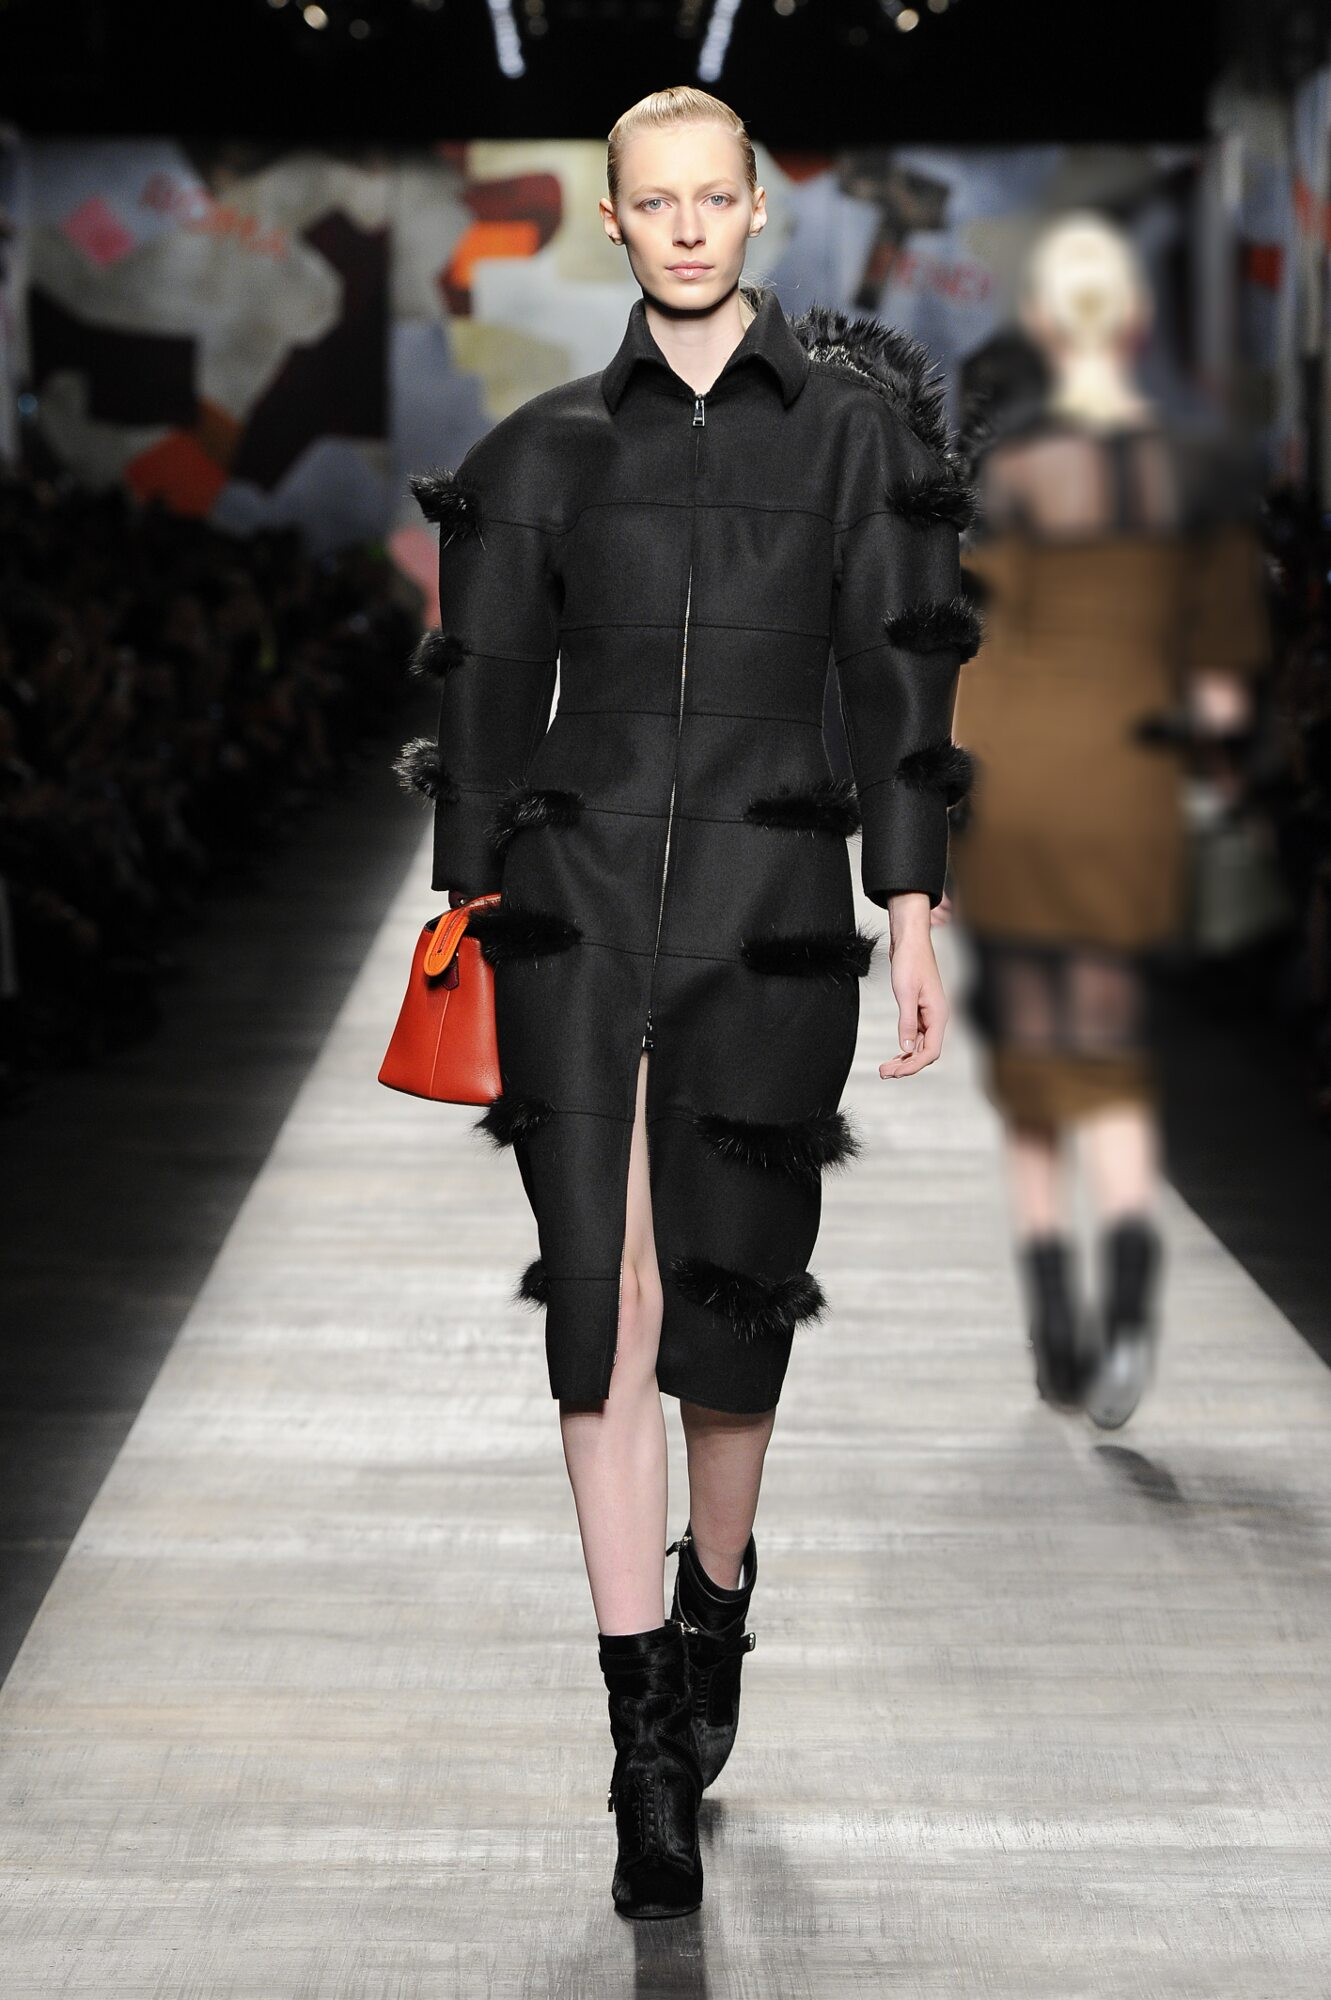 Winter 2014 Fashion Show Fendi